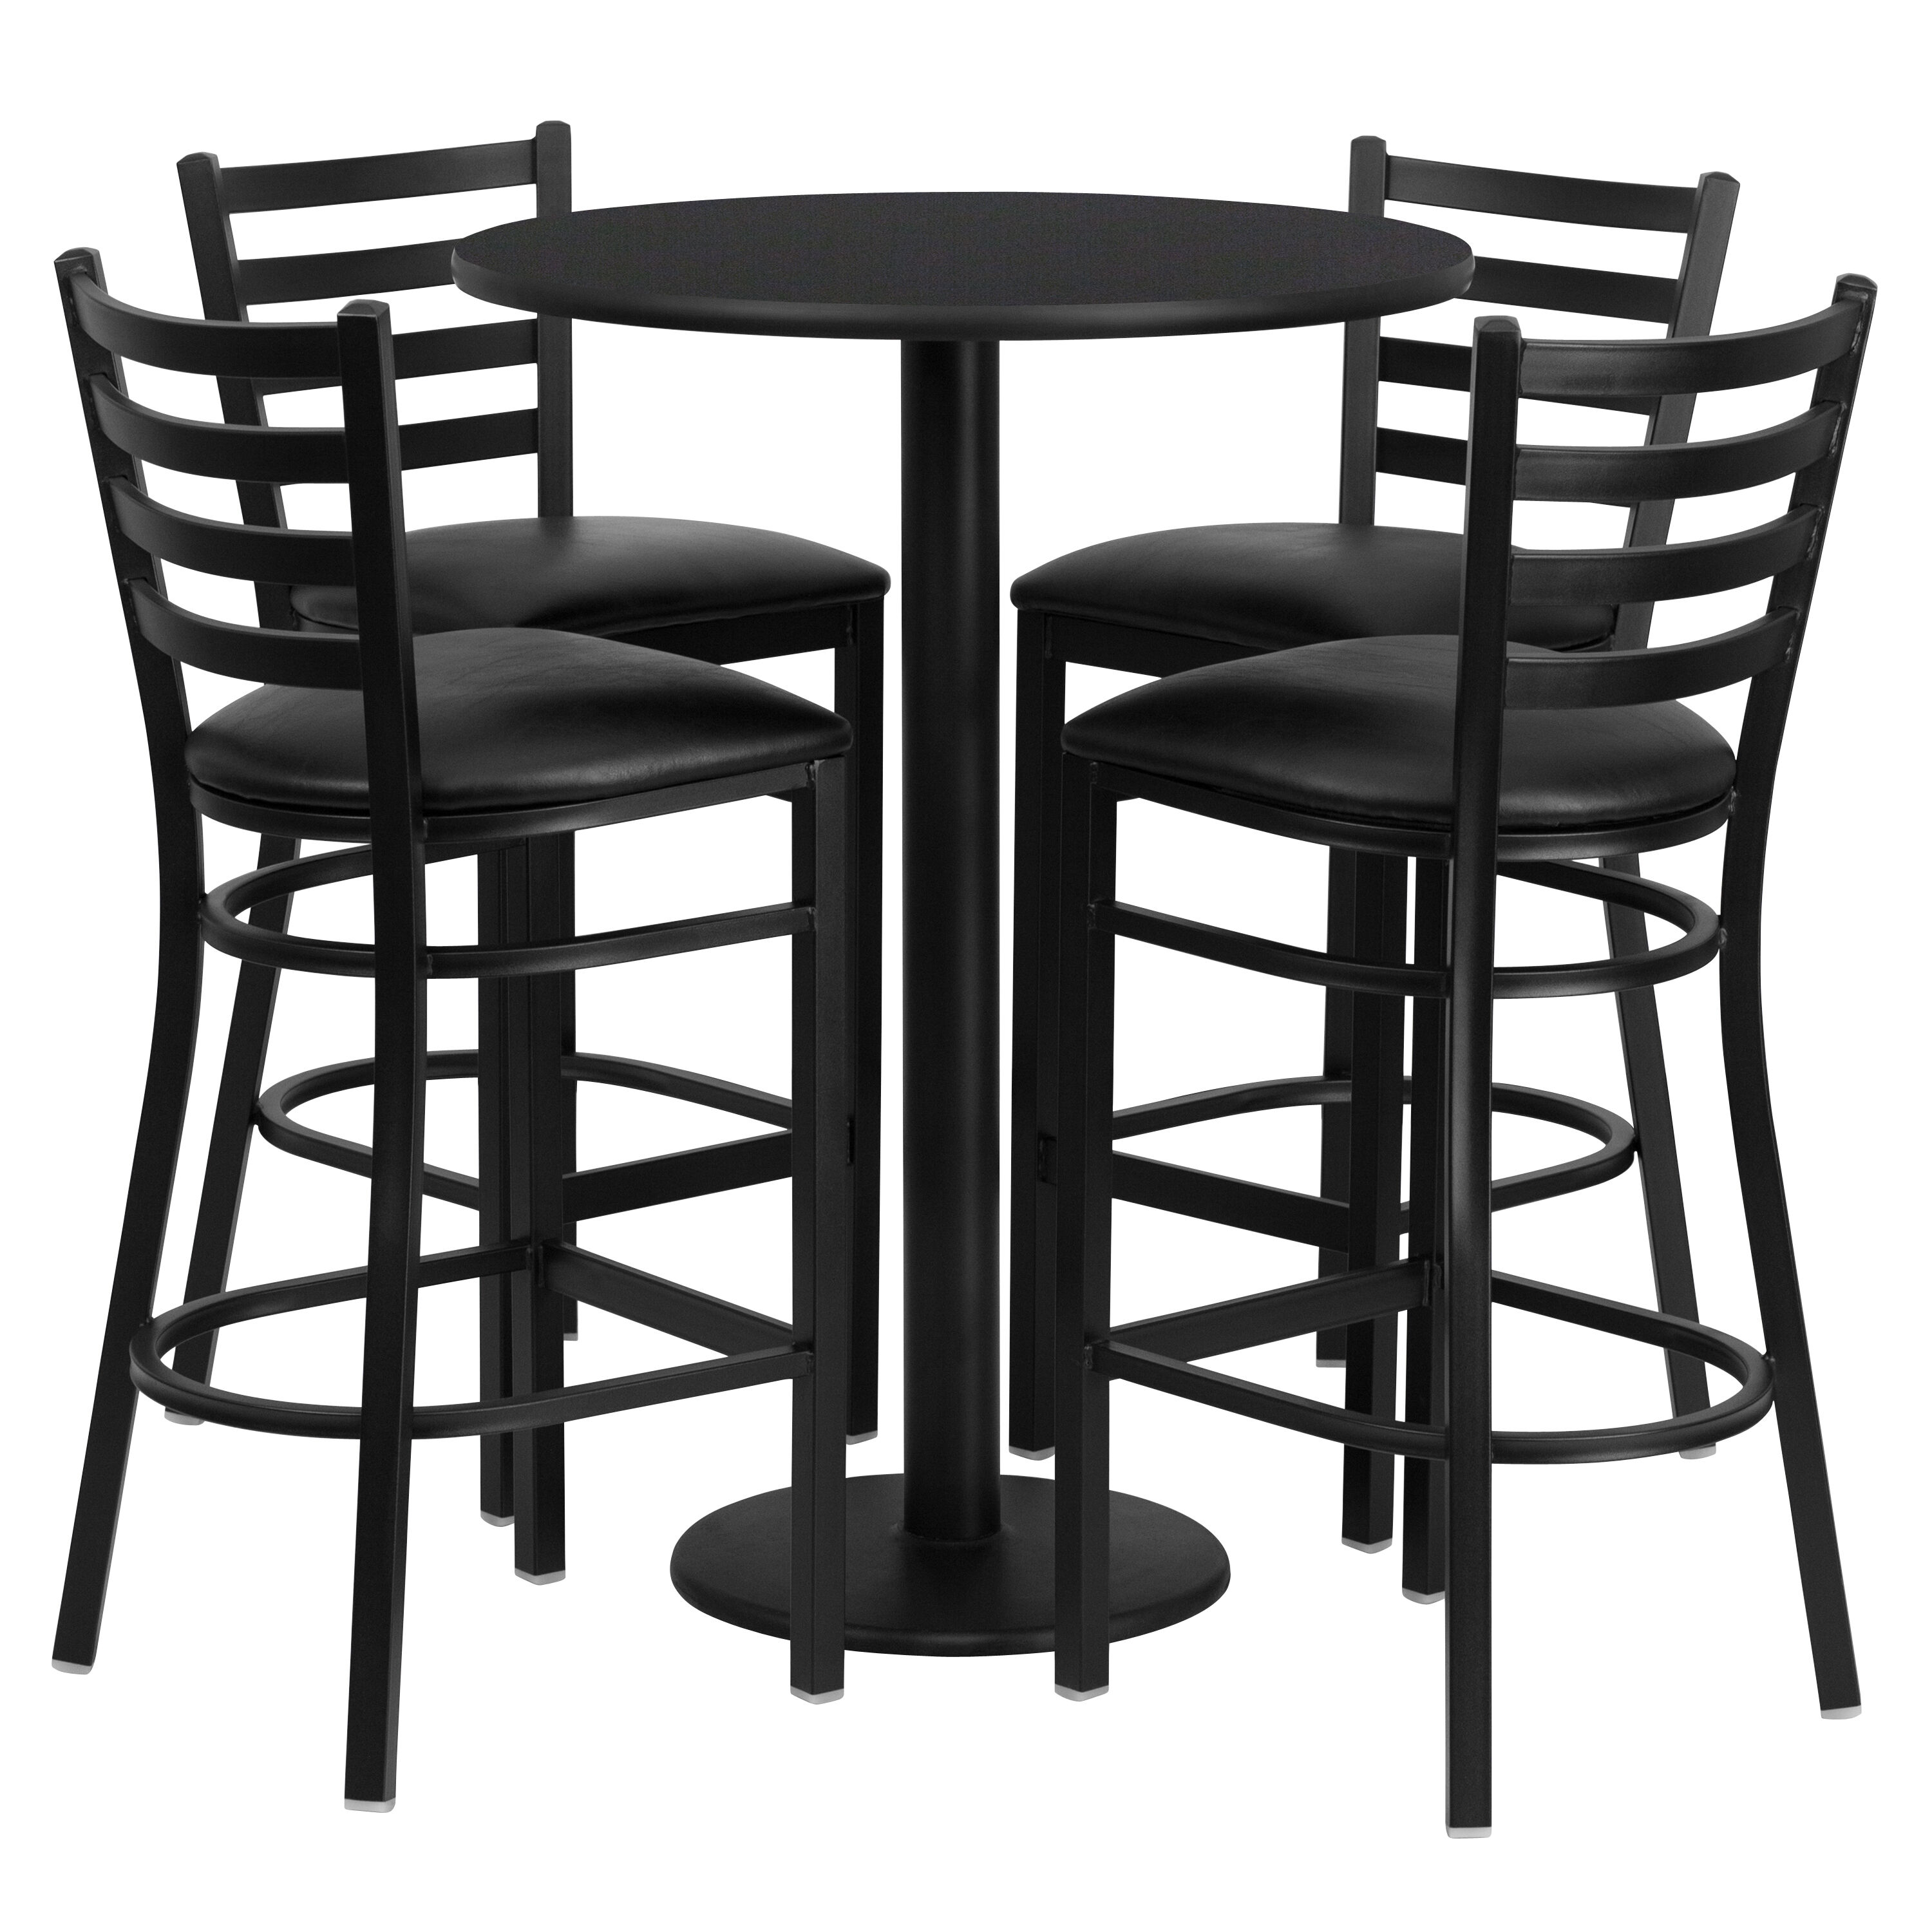 Restaurant Furniture For Less Restaurant Table And Chair Sets Moerton Complete Restaurant